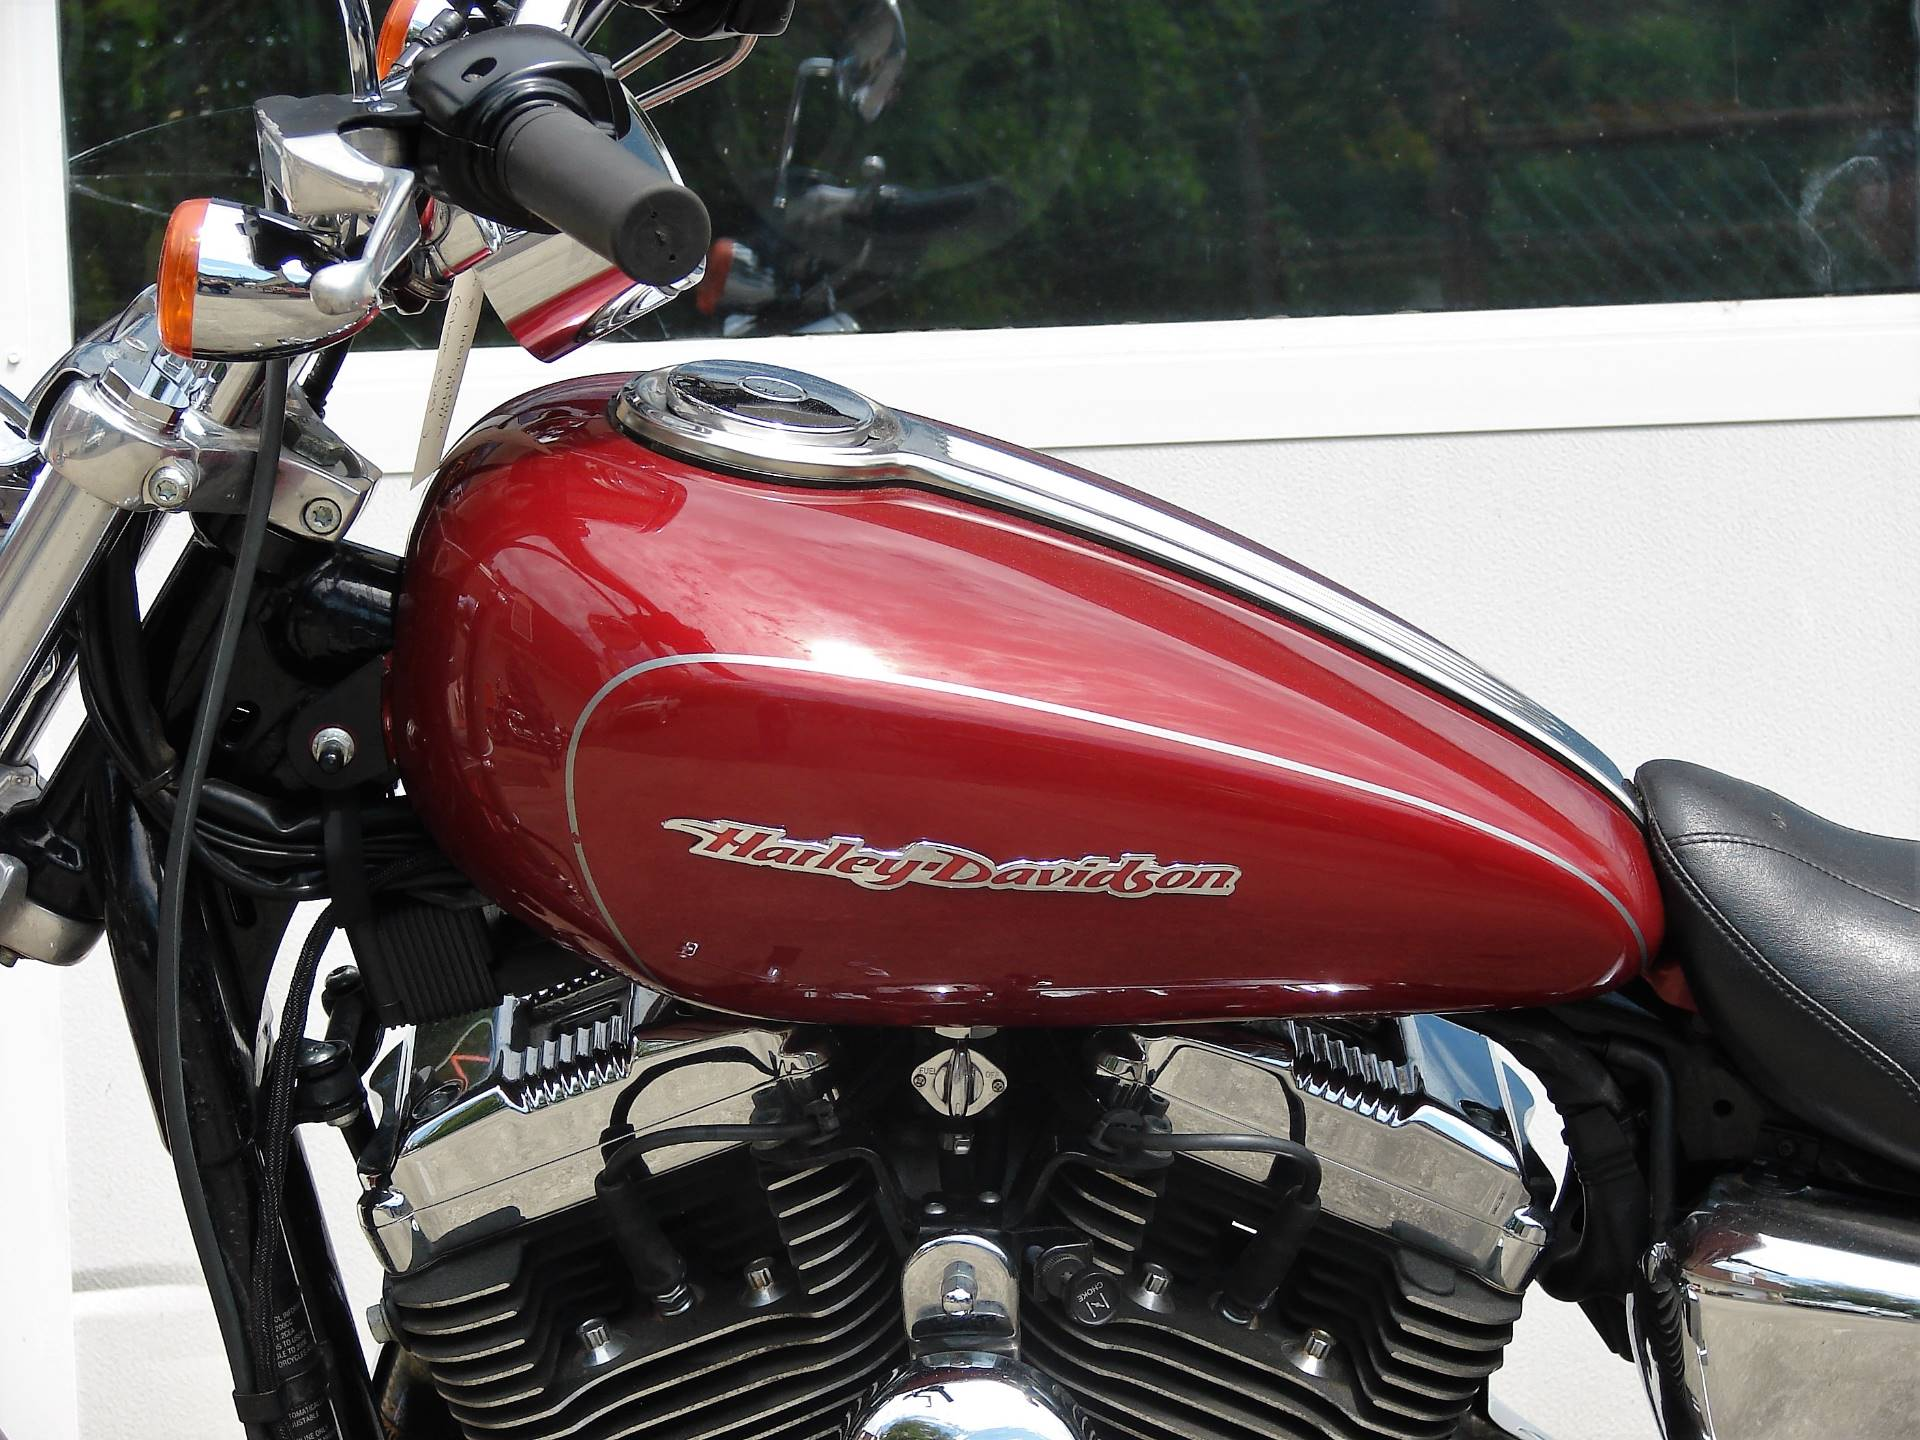 2006 Harley-Davidson XL 1200C Sportster Custom in Williamstown, New Jersey - Photo 7